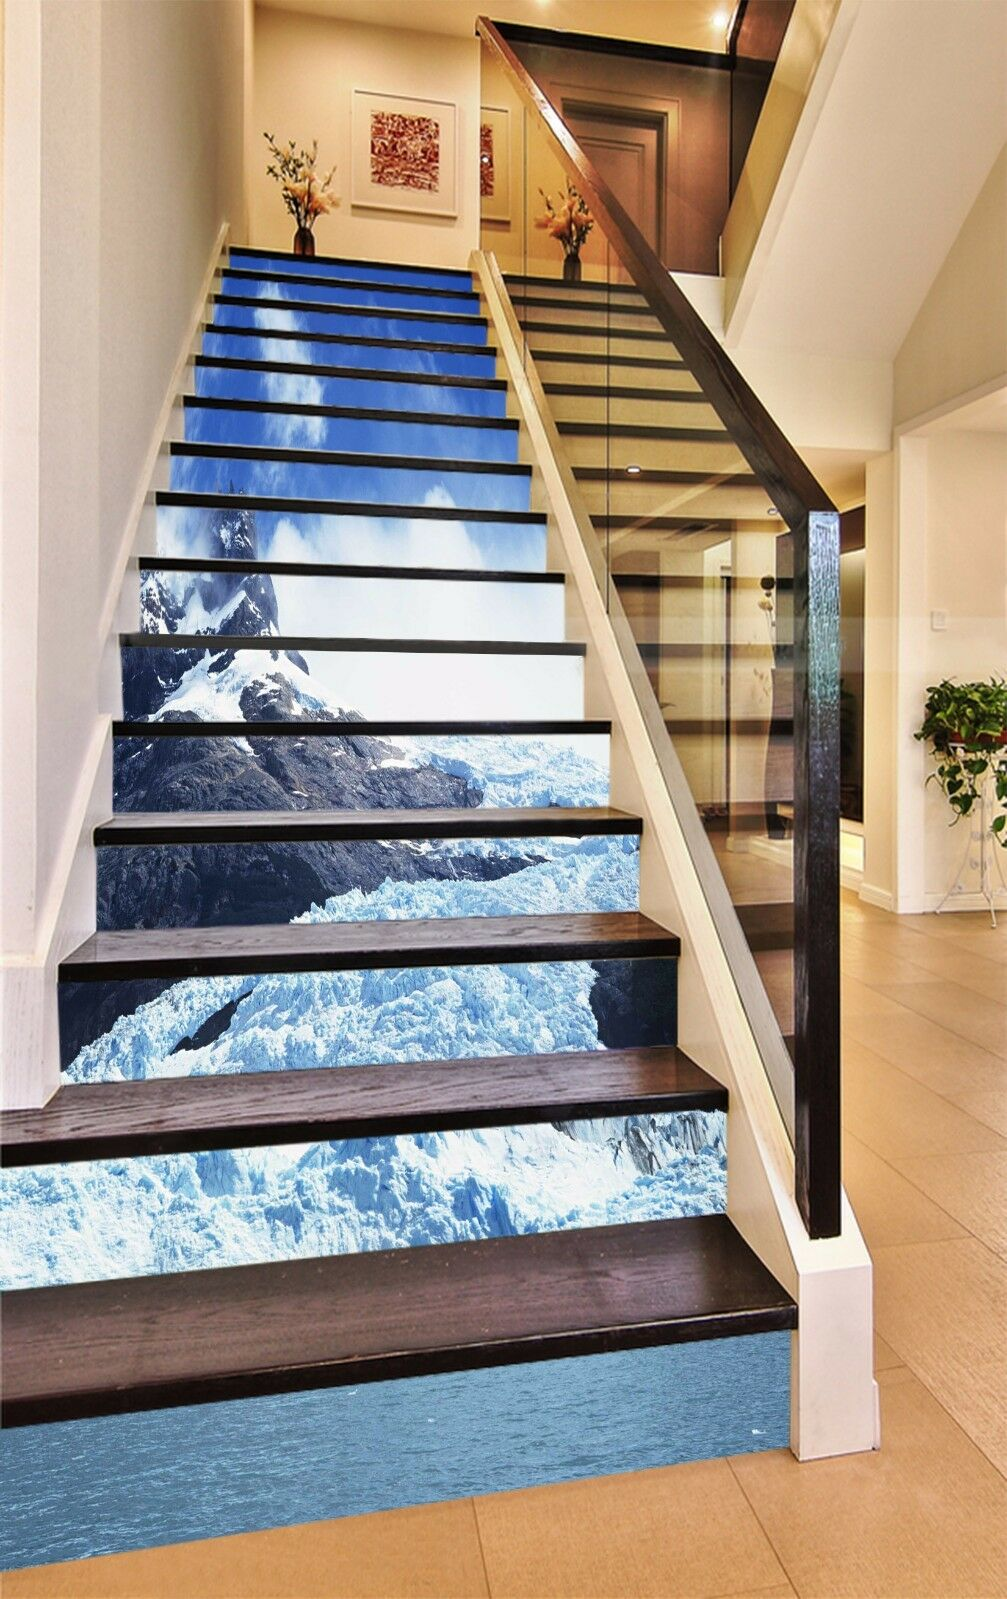 3D Snow Mountain 963Stair Risers Decoration Photo Mural Vinyl Decal Wallpaper AU